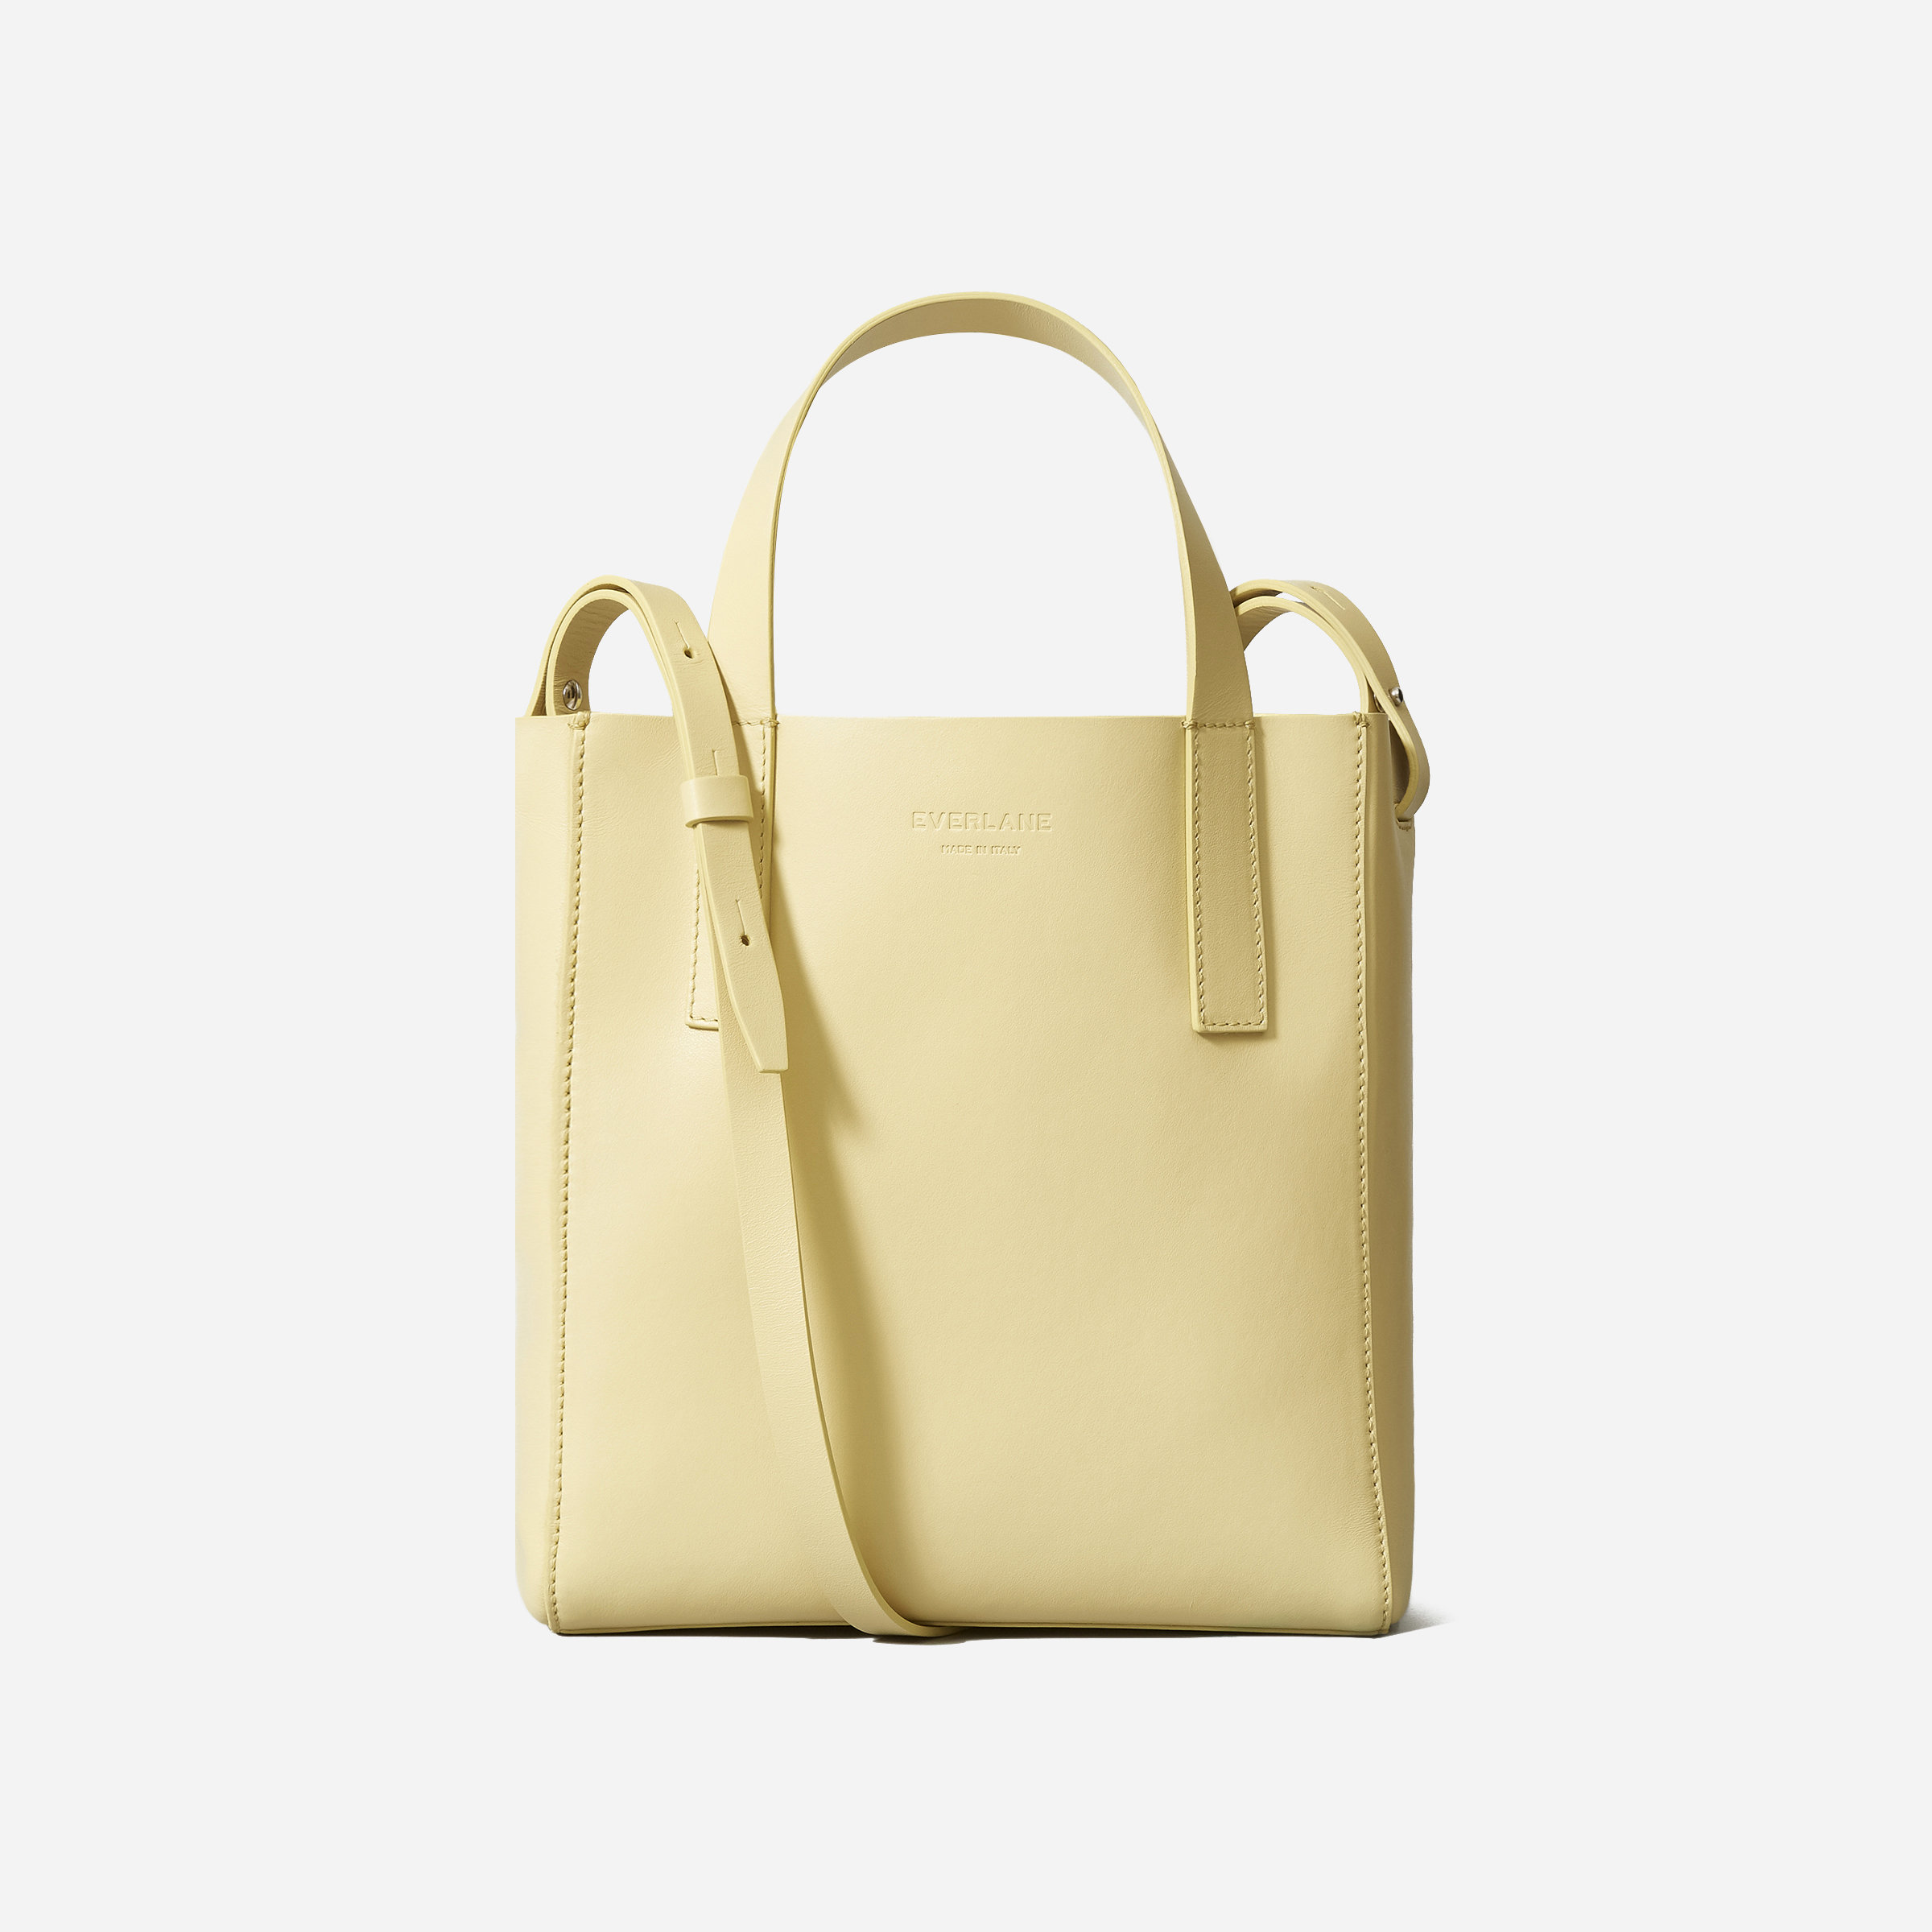 Everlane - Day Tote, Mini / $155The Day Tote Mini: Smaller size—same all day hustle.